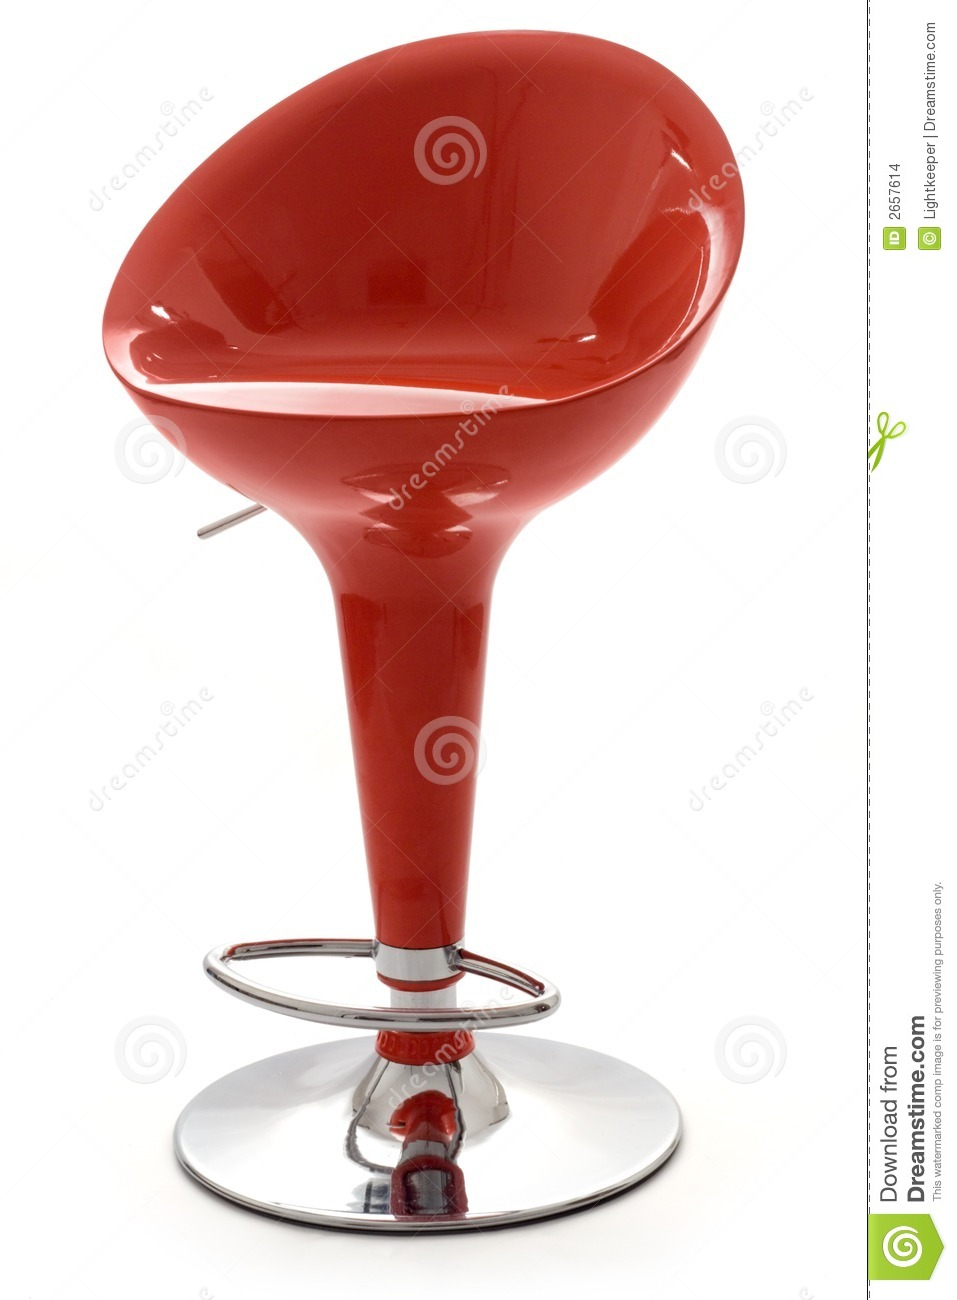 Stylish Red Bar Stool Stock Photo Image Of House